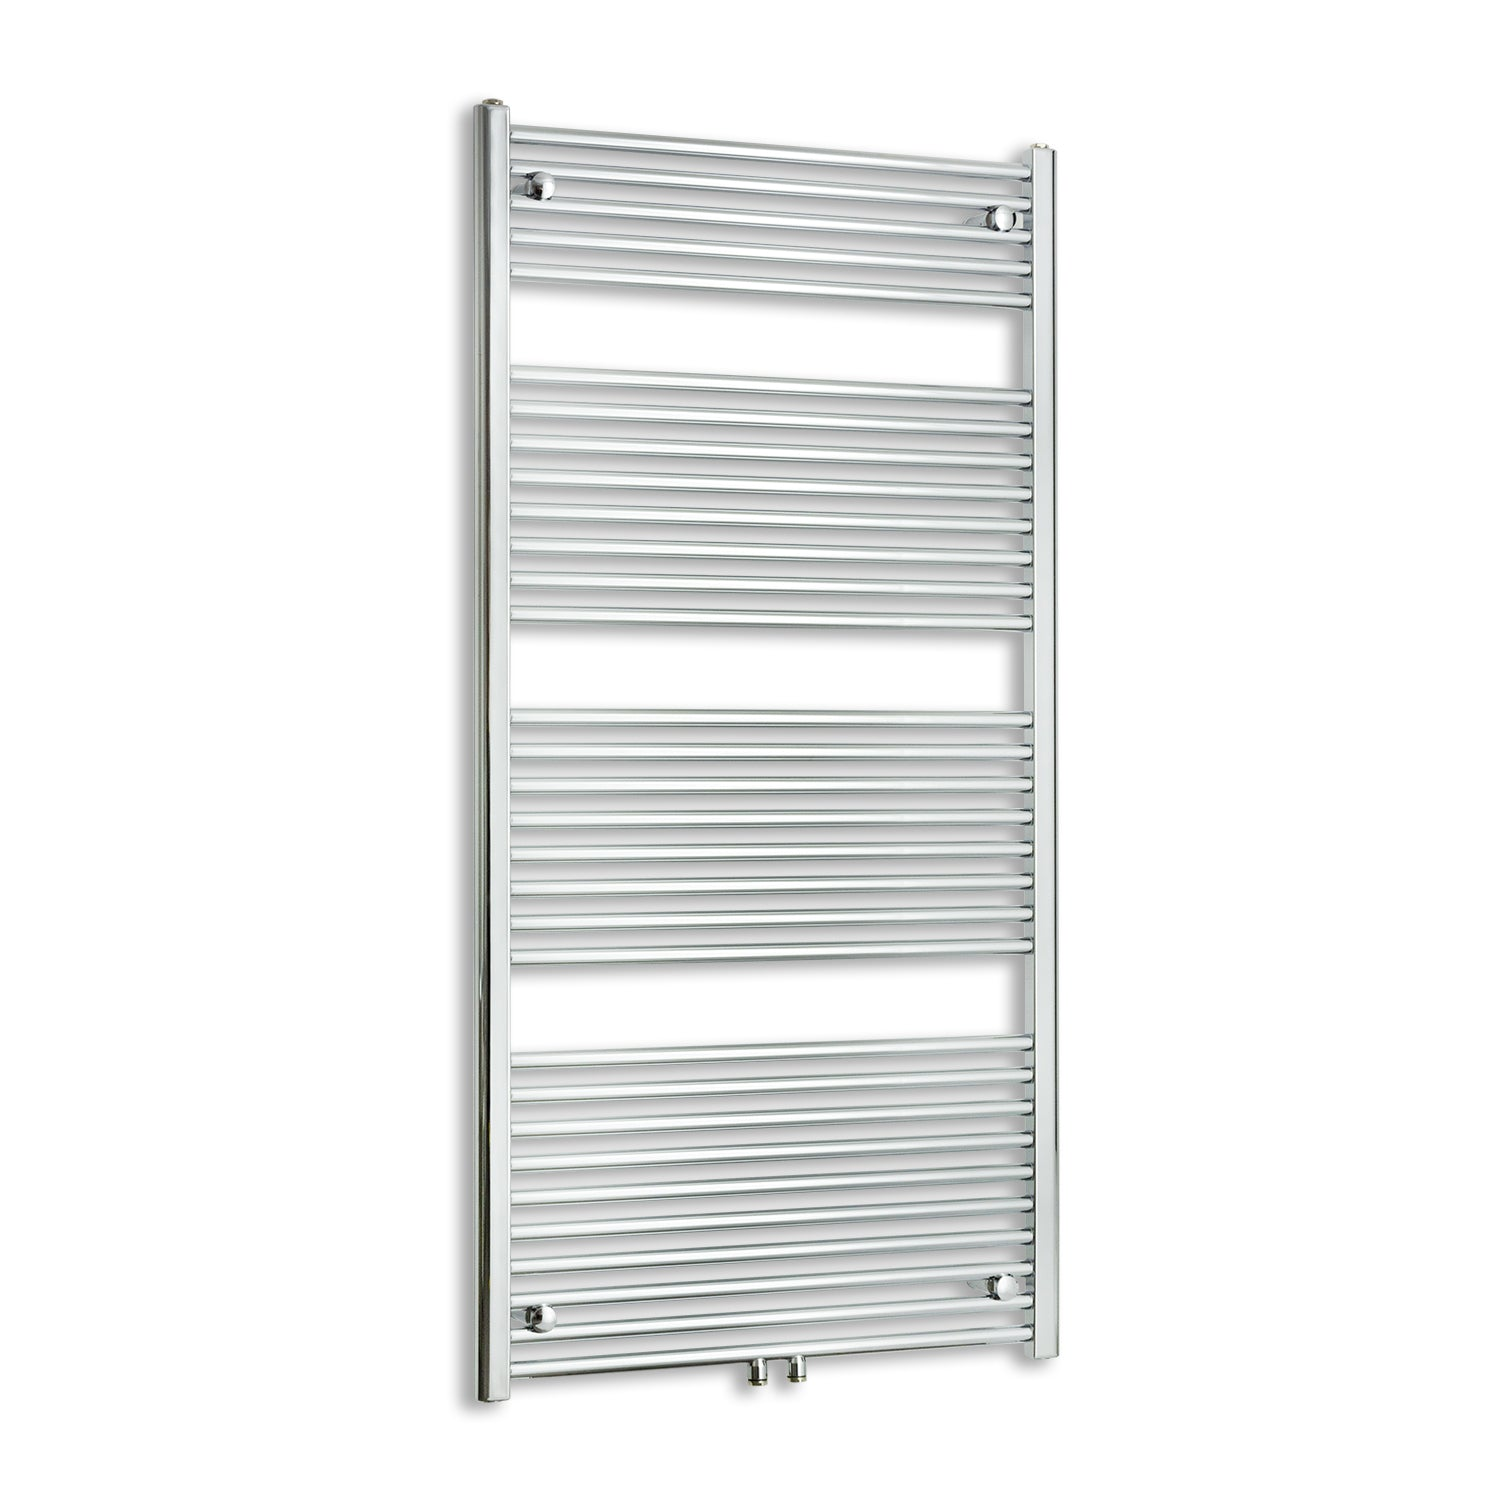 750mm Wide 1500mm High Straight Chrome Heated Towel Rail Radiator HTR Dual Fuel,Towel Rail Only